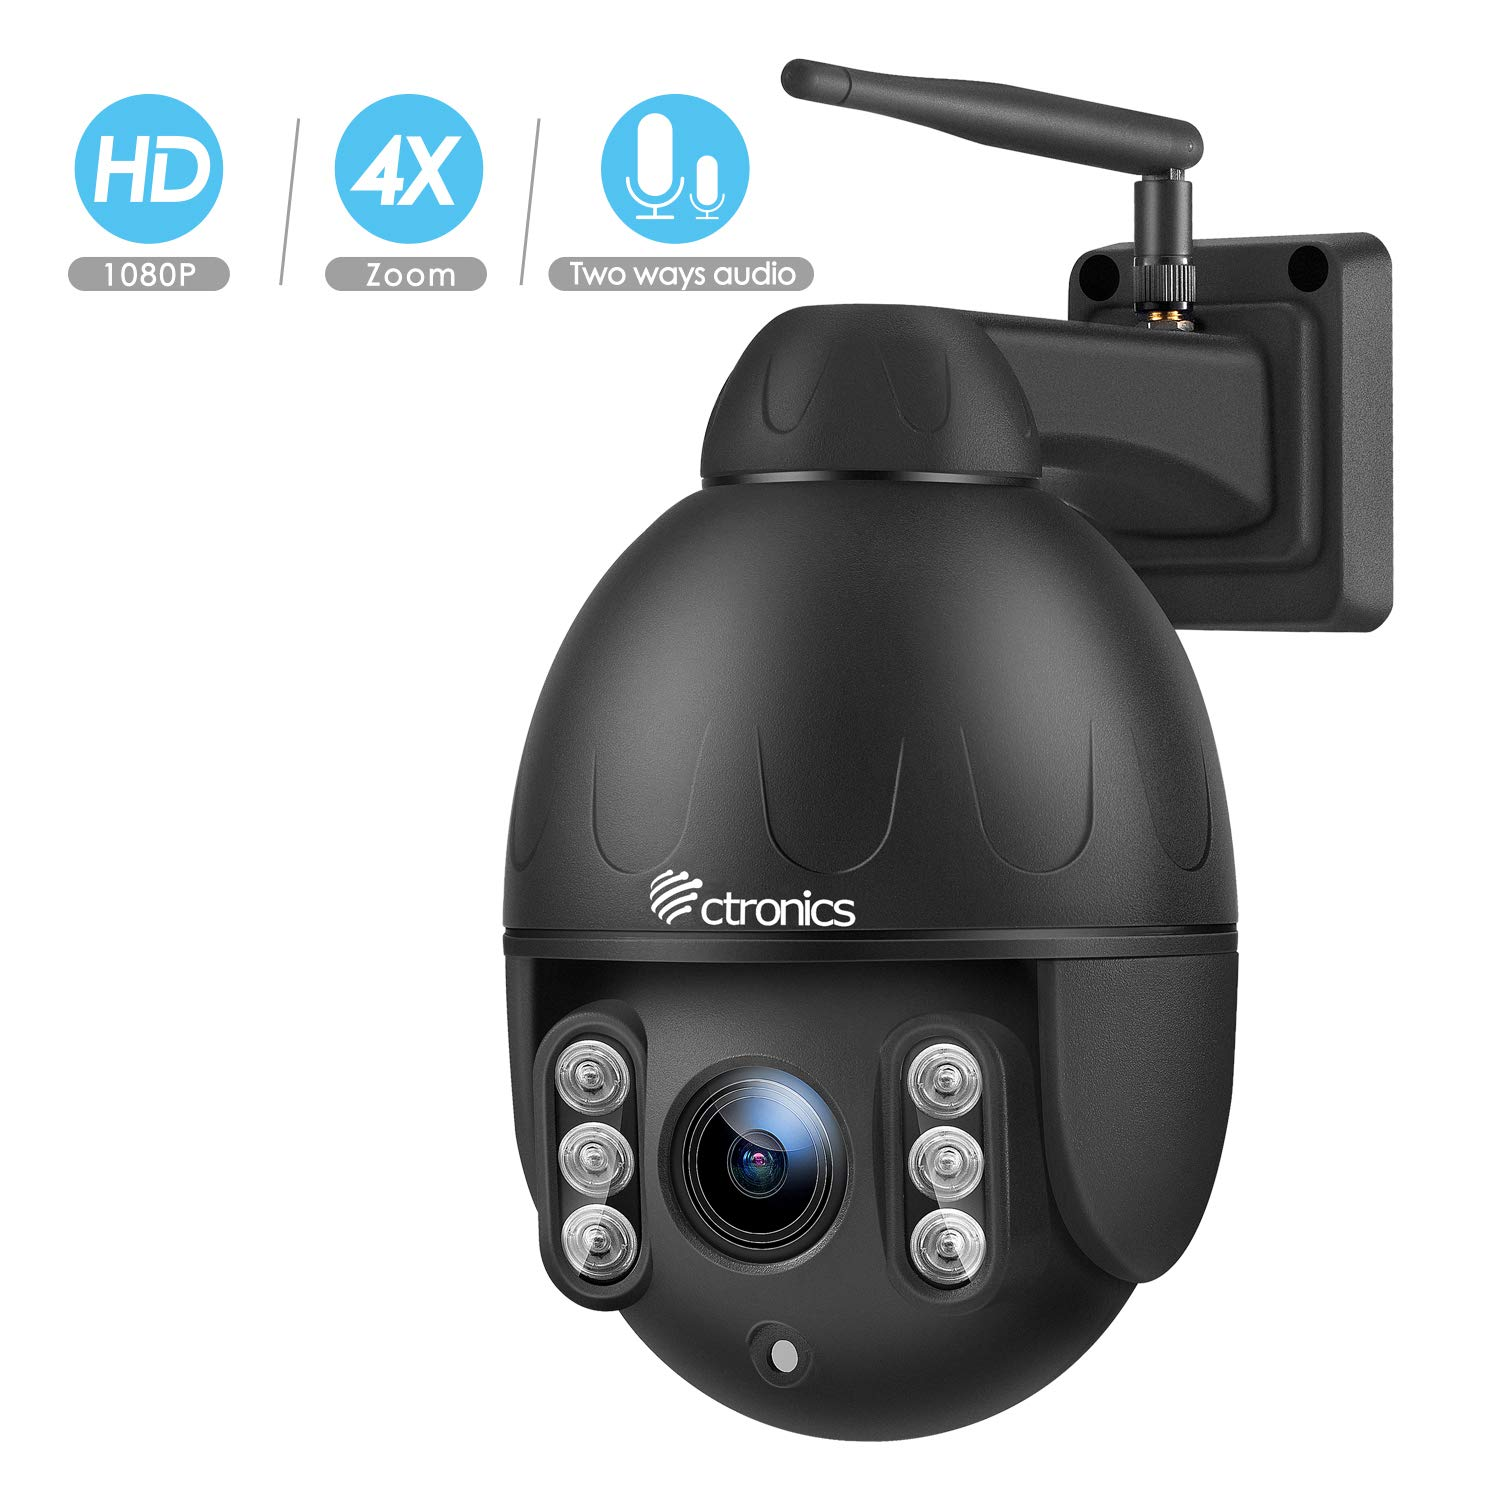 Ctronics PTZ Camera Outdoor,1080P WiFi Security IP Camera, 355° Pan 120° Tilt 4X Optical Zoom, Instant Notification of Motion Detection,165ft Night Vision, Black by Ctronics